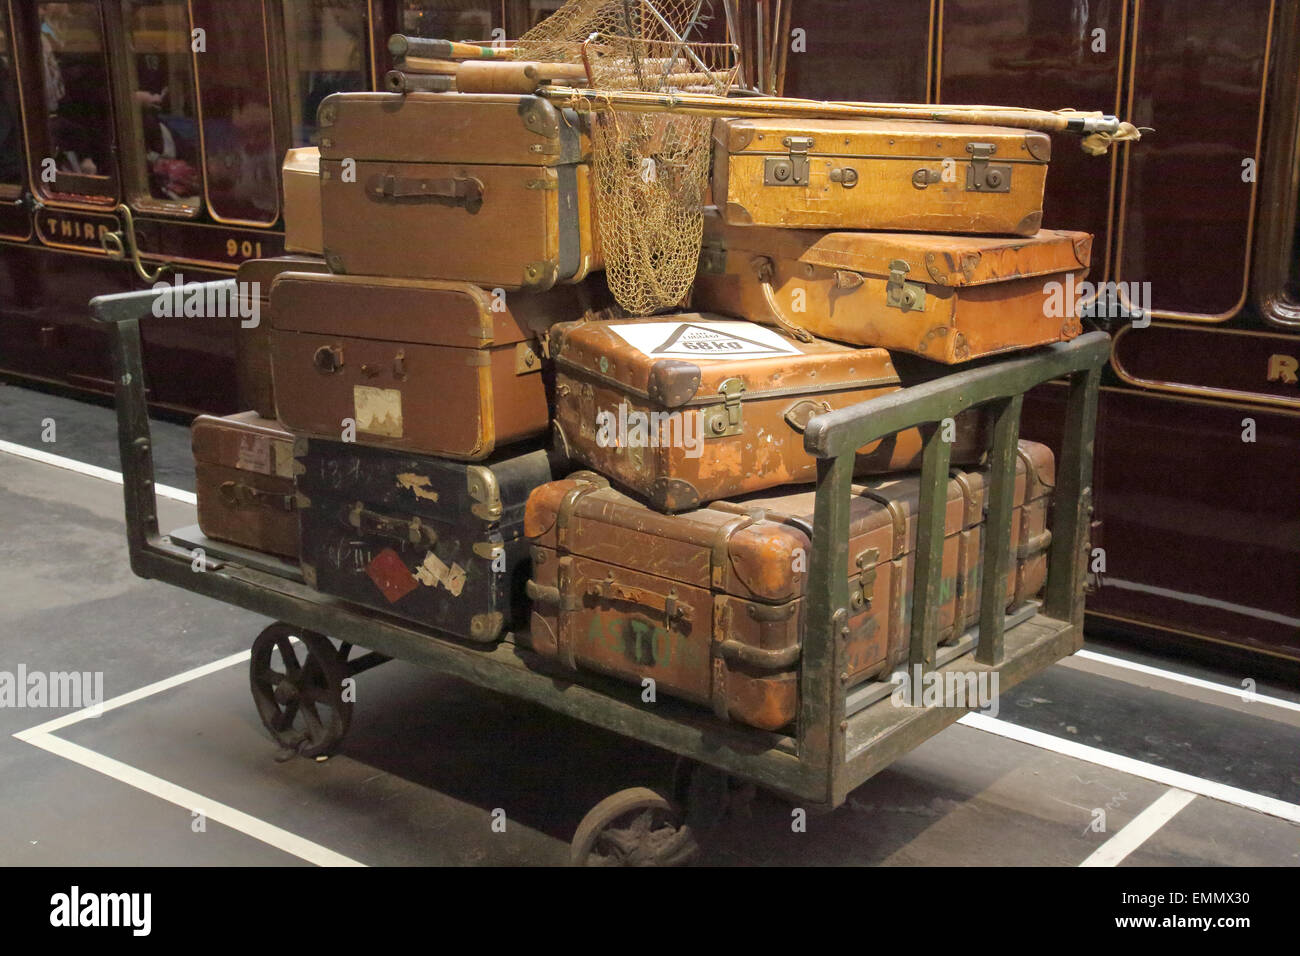 old luggage in the national railway museum in york - Stock Image